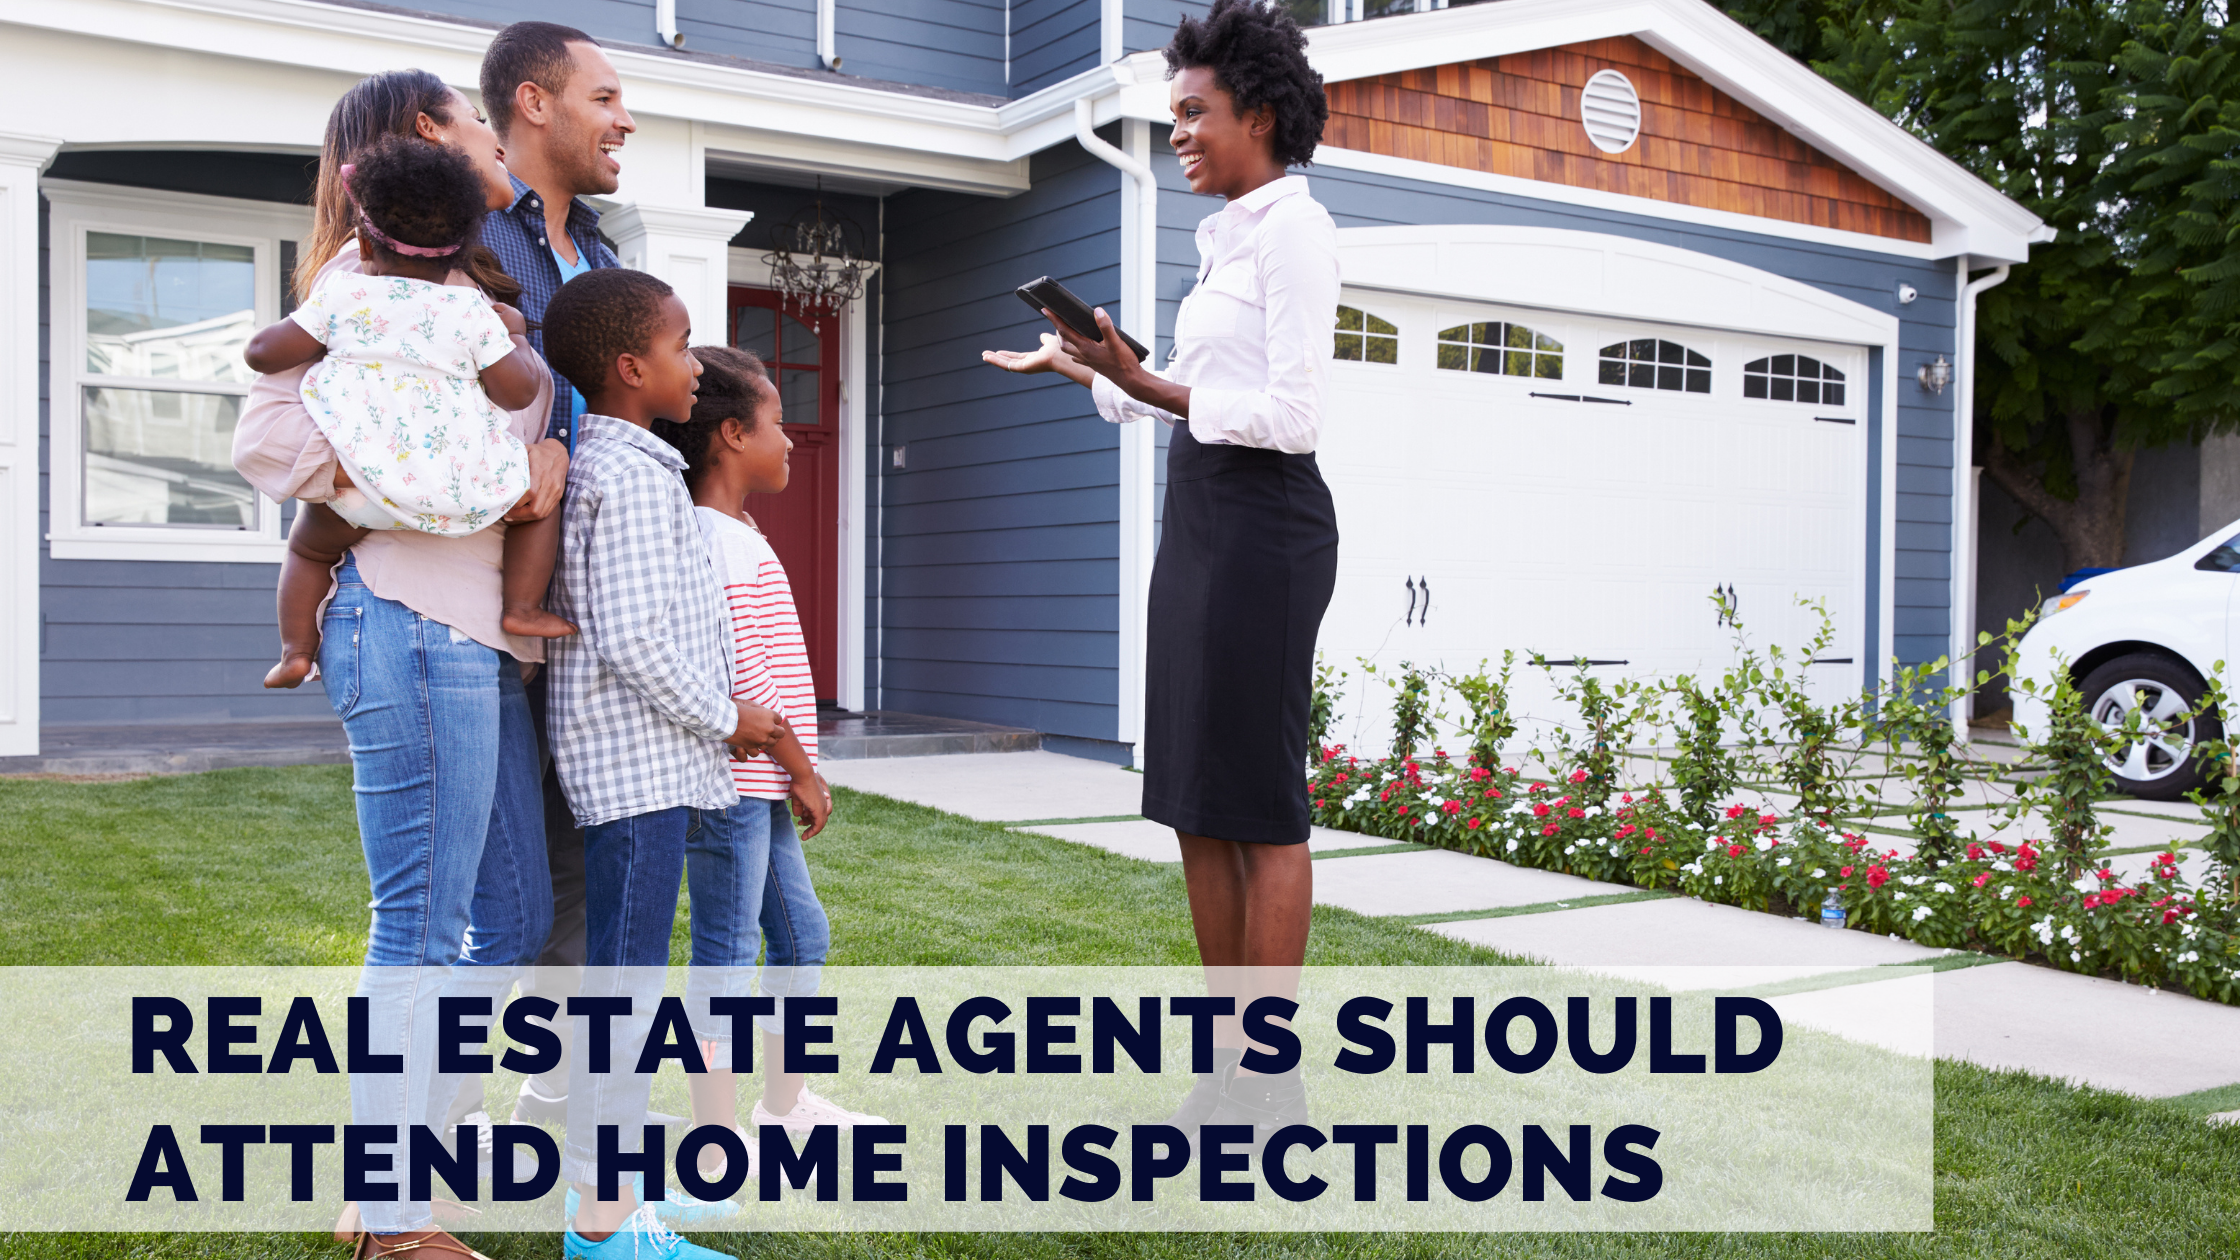 Real Estate Agents Should Attend Home Inspections